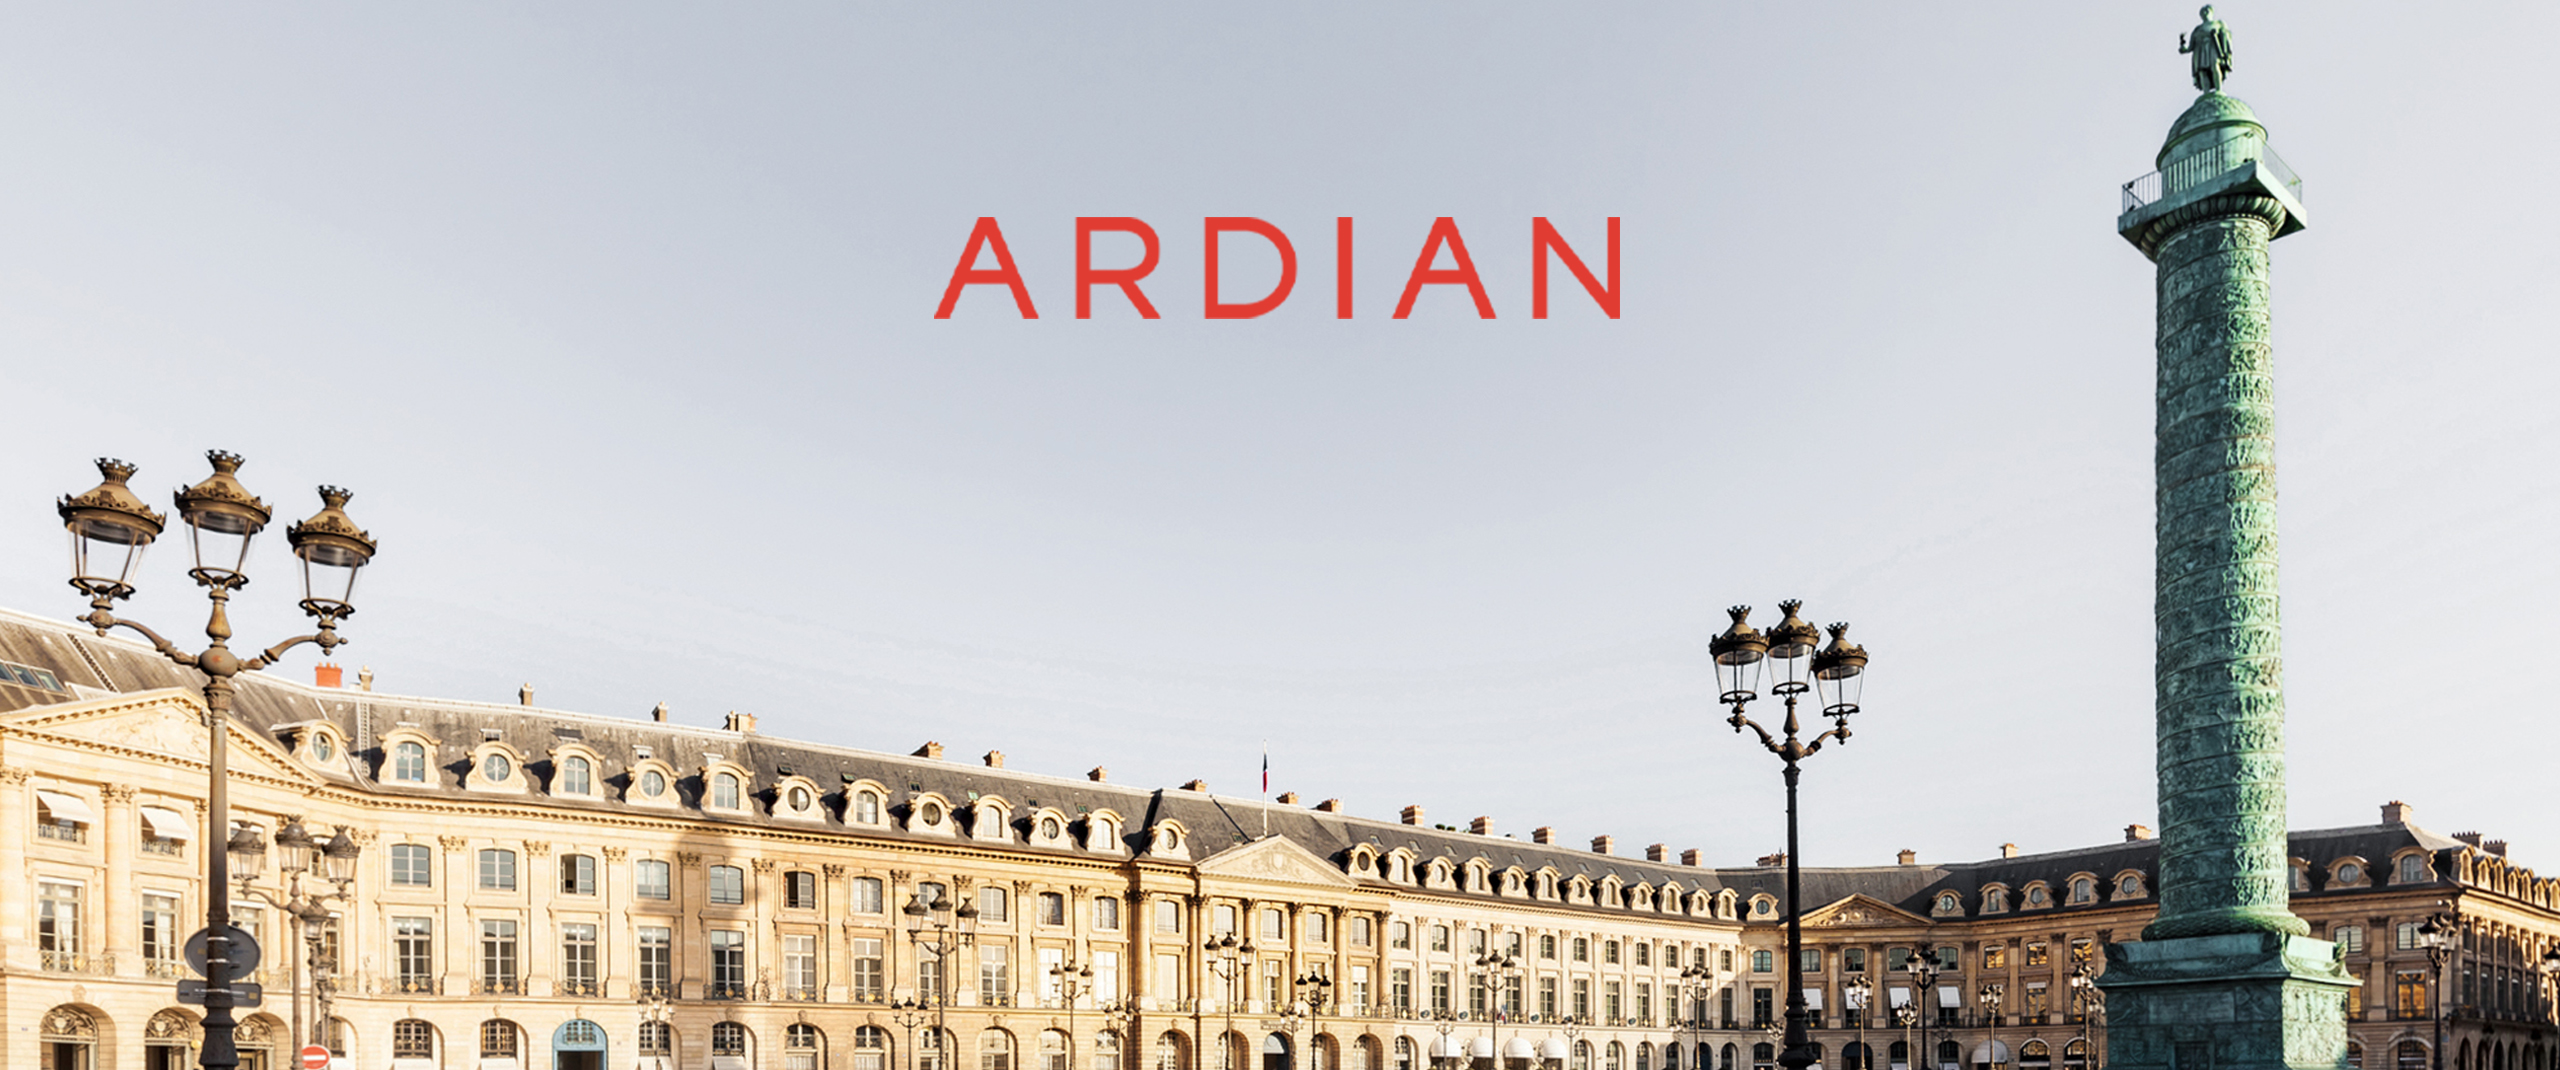 ARDIAN's offices exterior